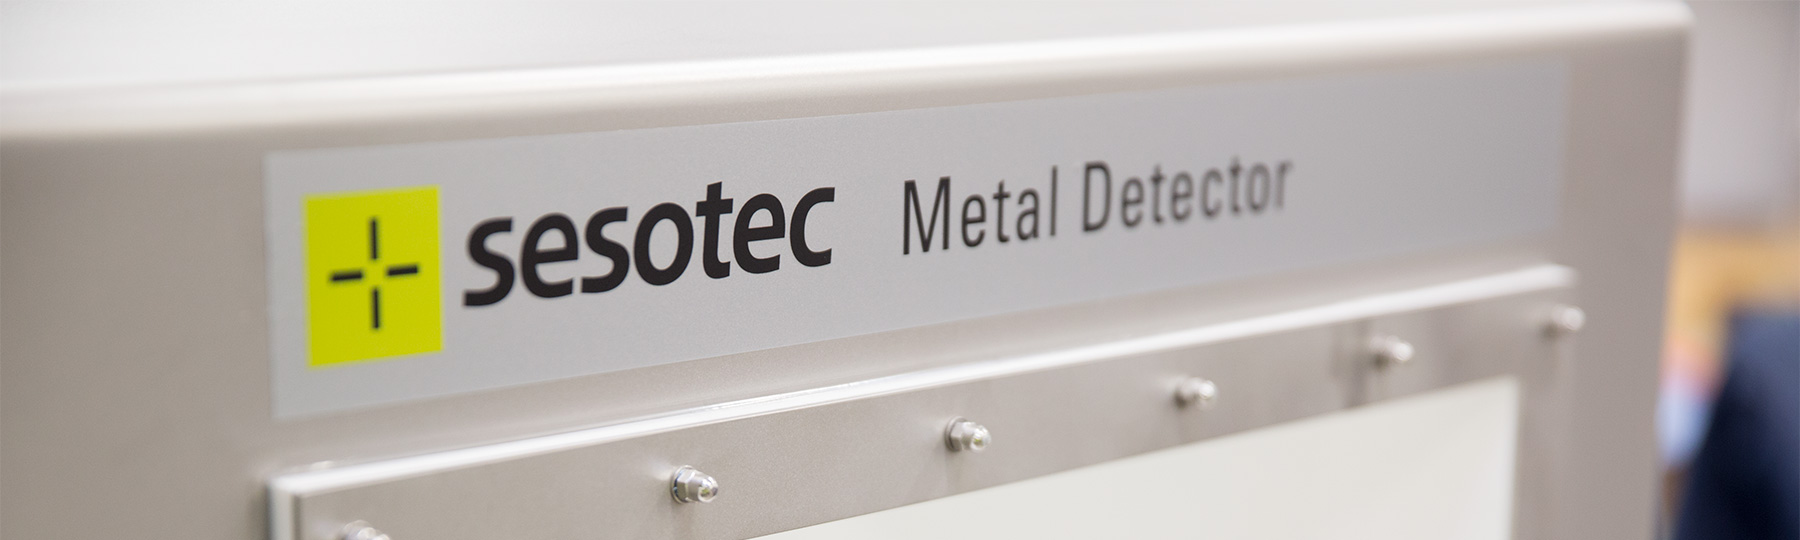 Metal Detectors Inductive Detection Systems Sesotec How To Build A Detector Circuit Contact